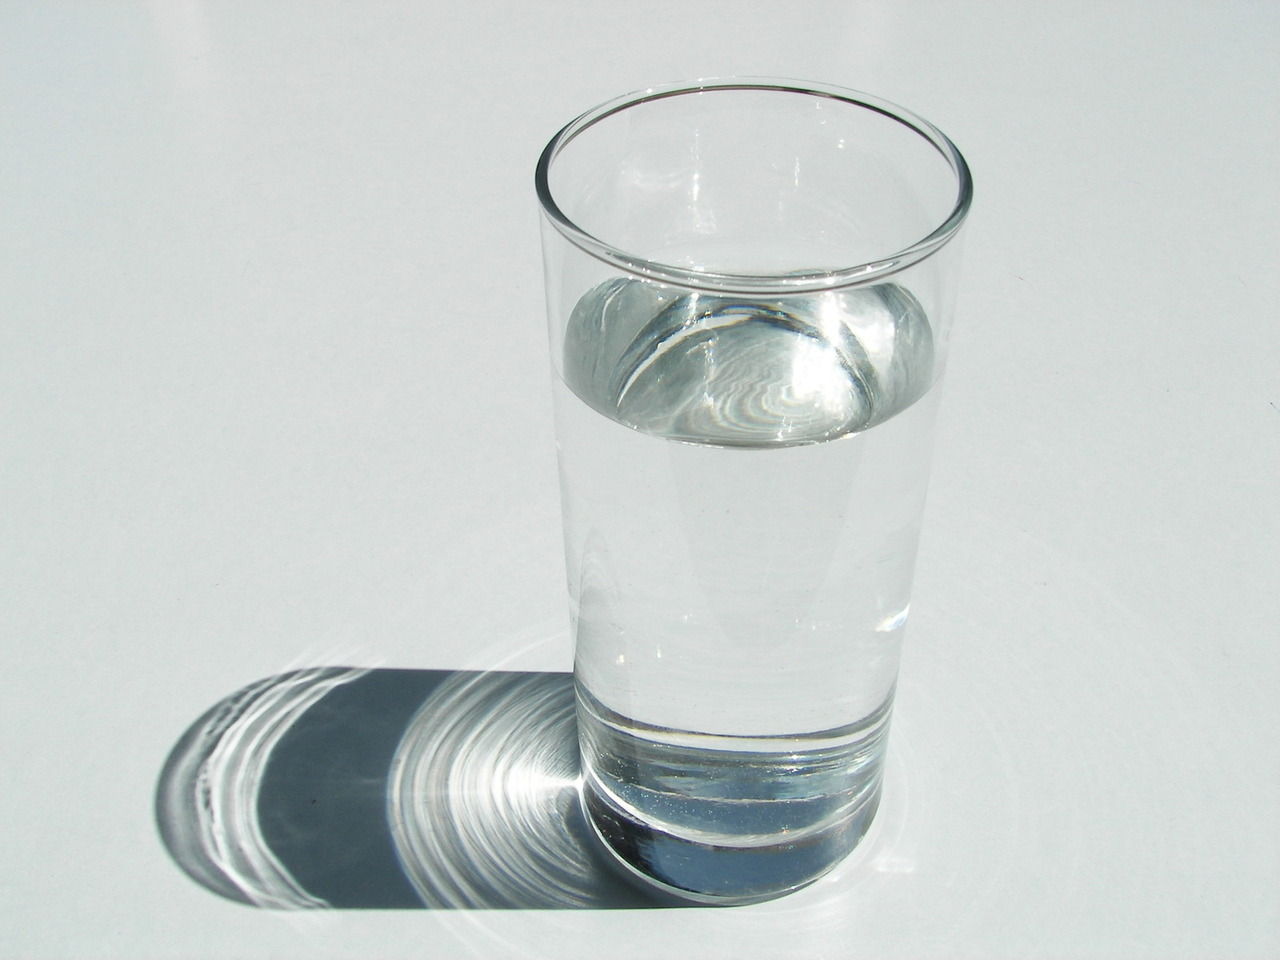 Charlotte water quality concerns